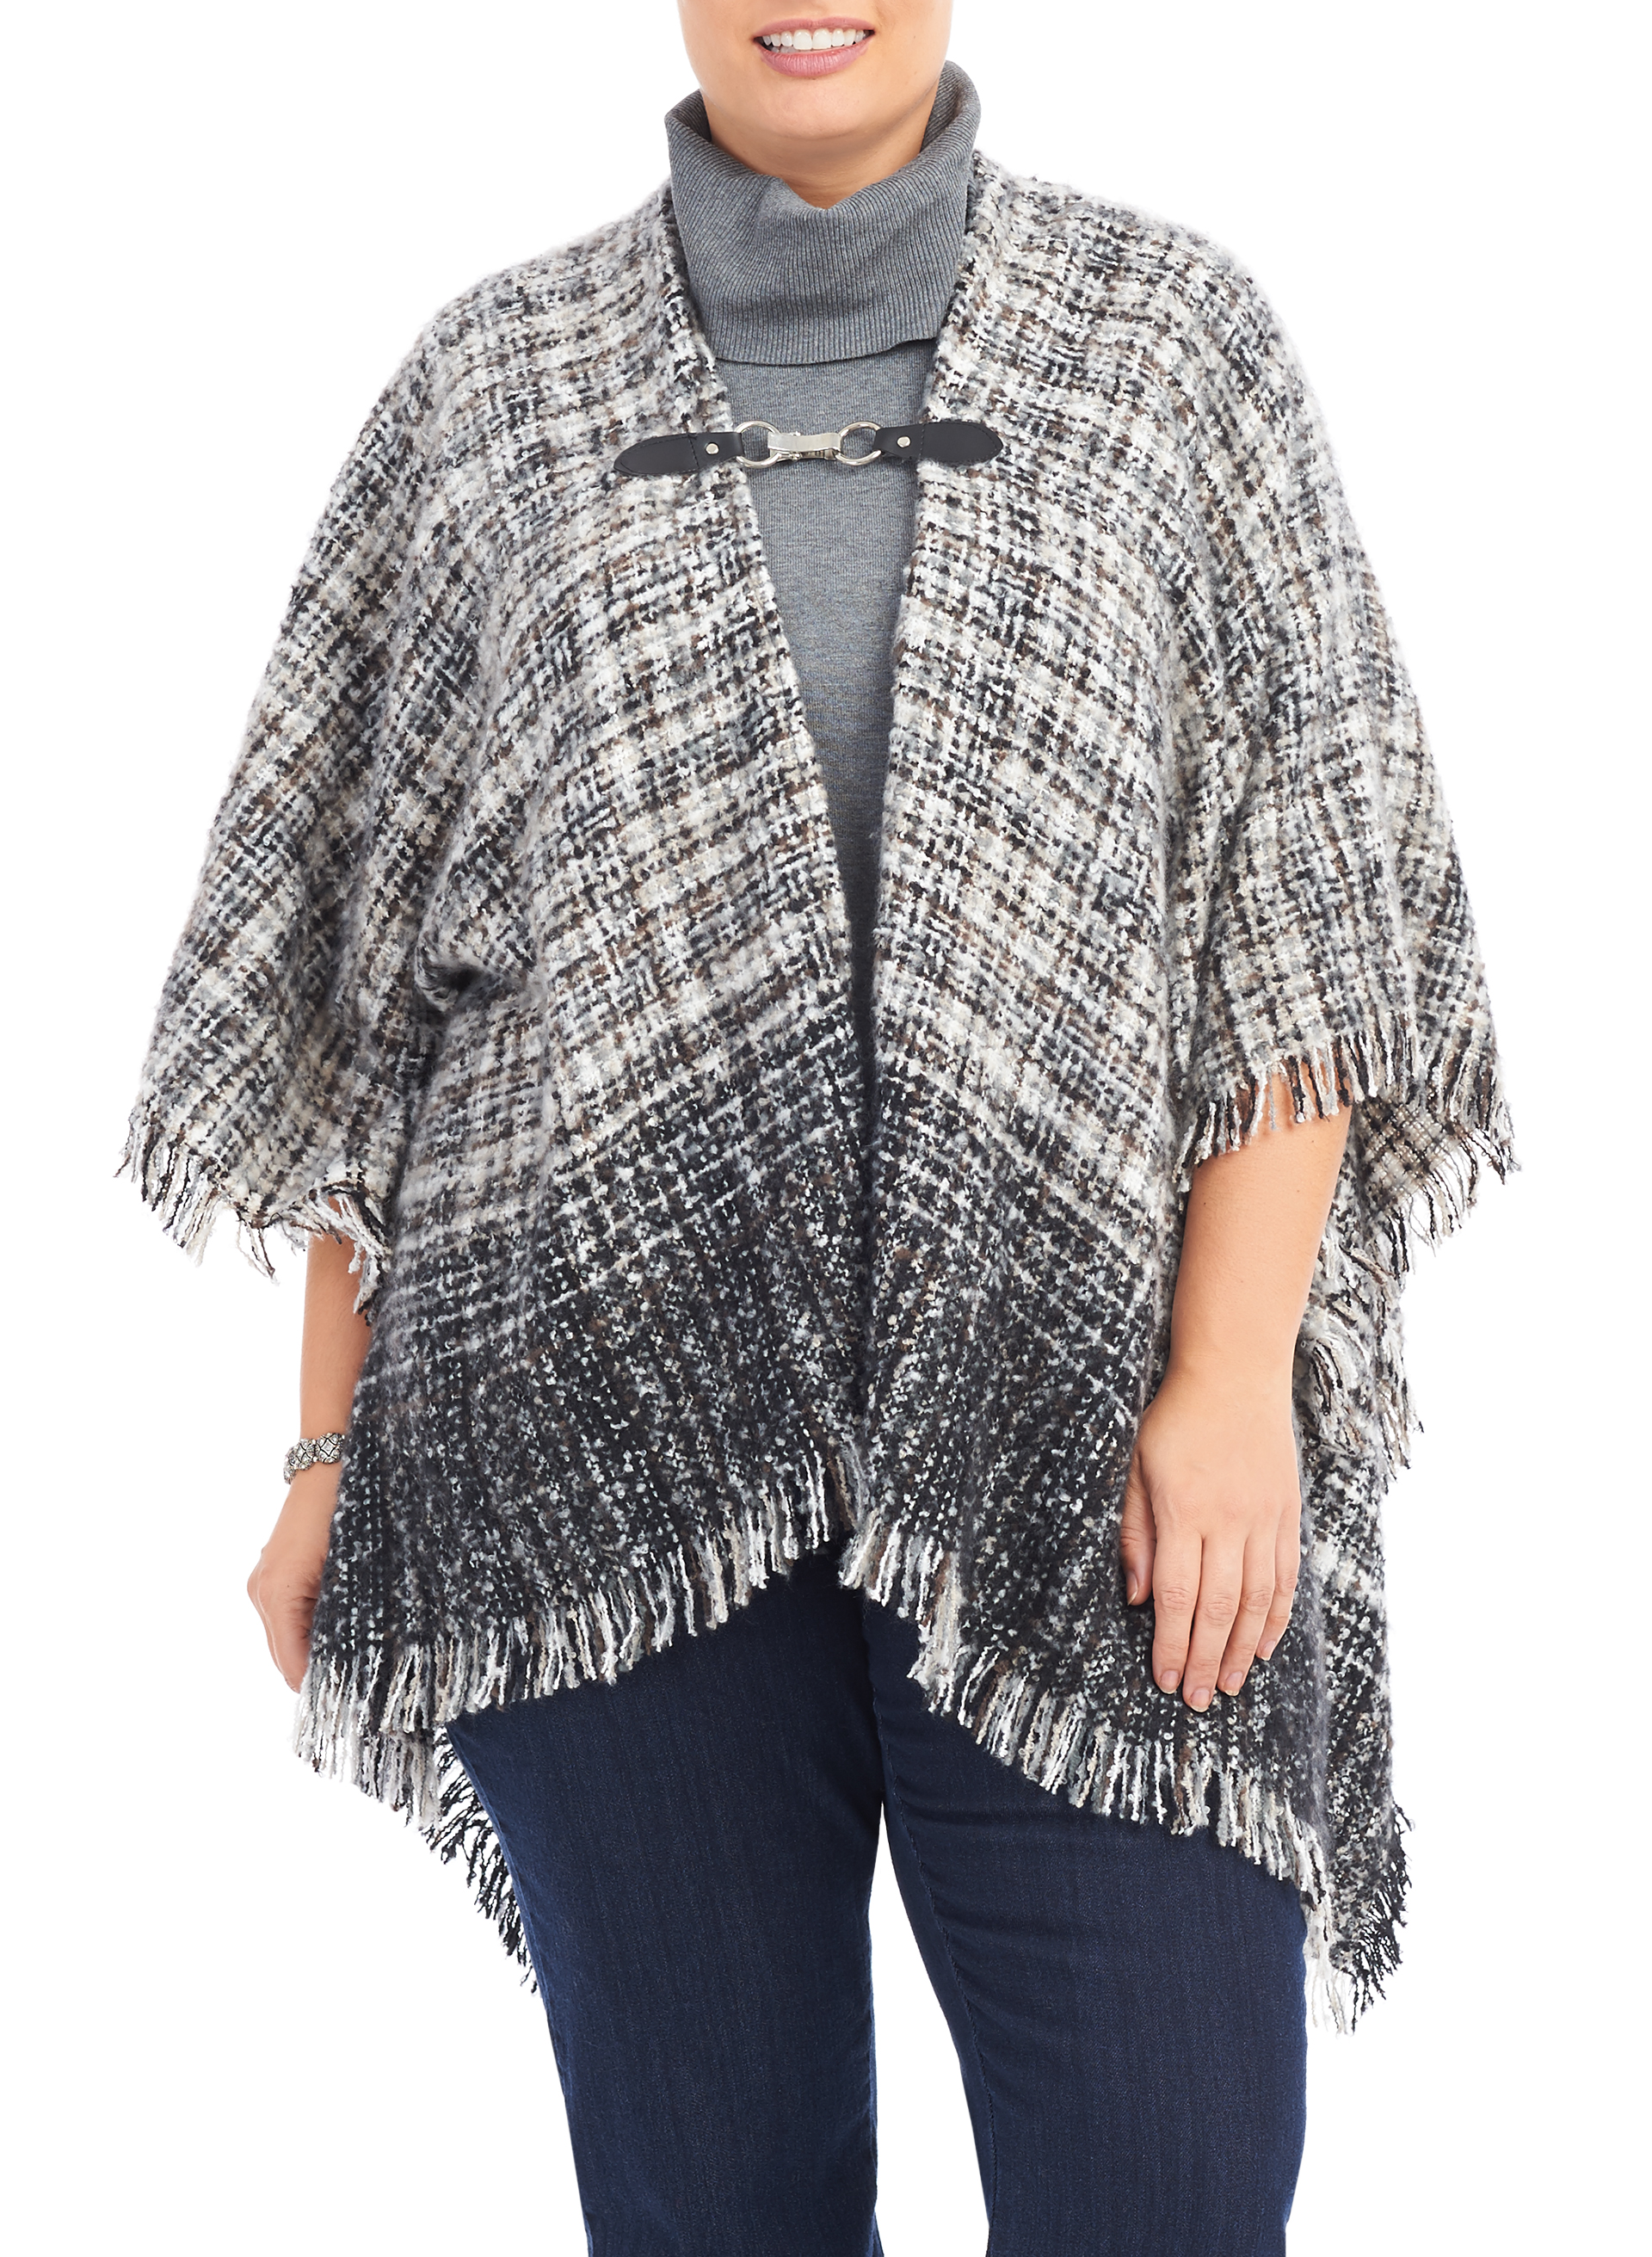 Degradé Plaid Wrap Scarf, Black, hi-res